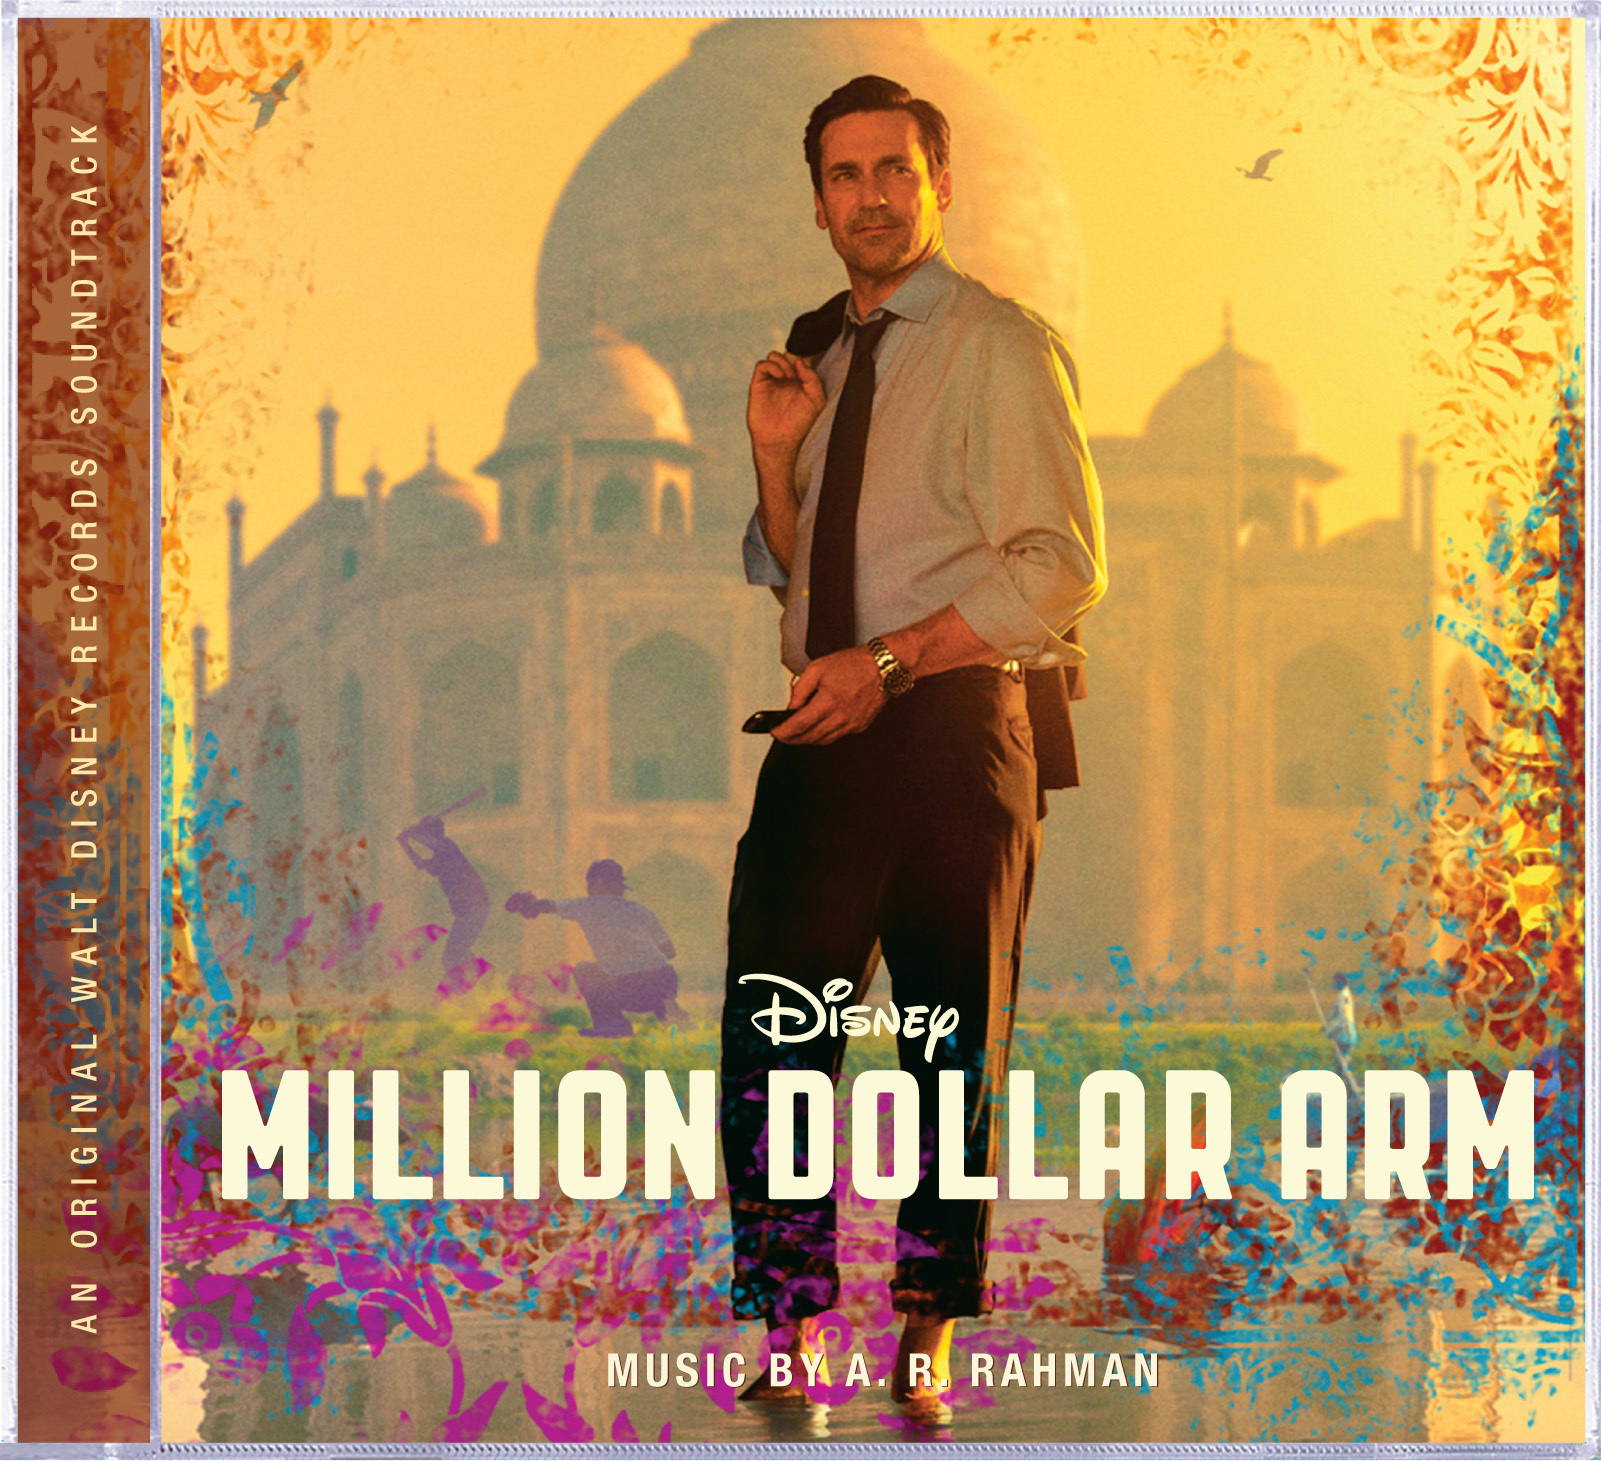 Walt Disney Records to Release MILLION DOLLAR ARM Soundtrack Next Week